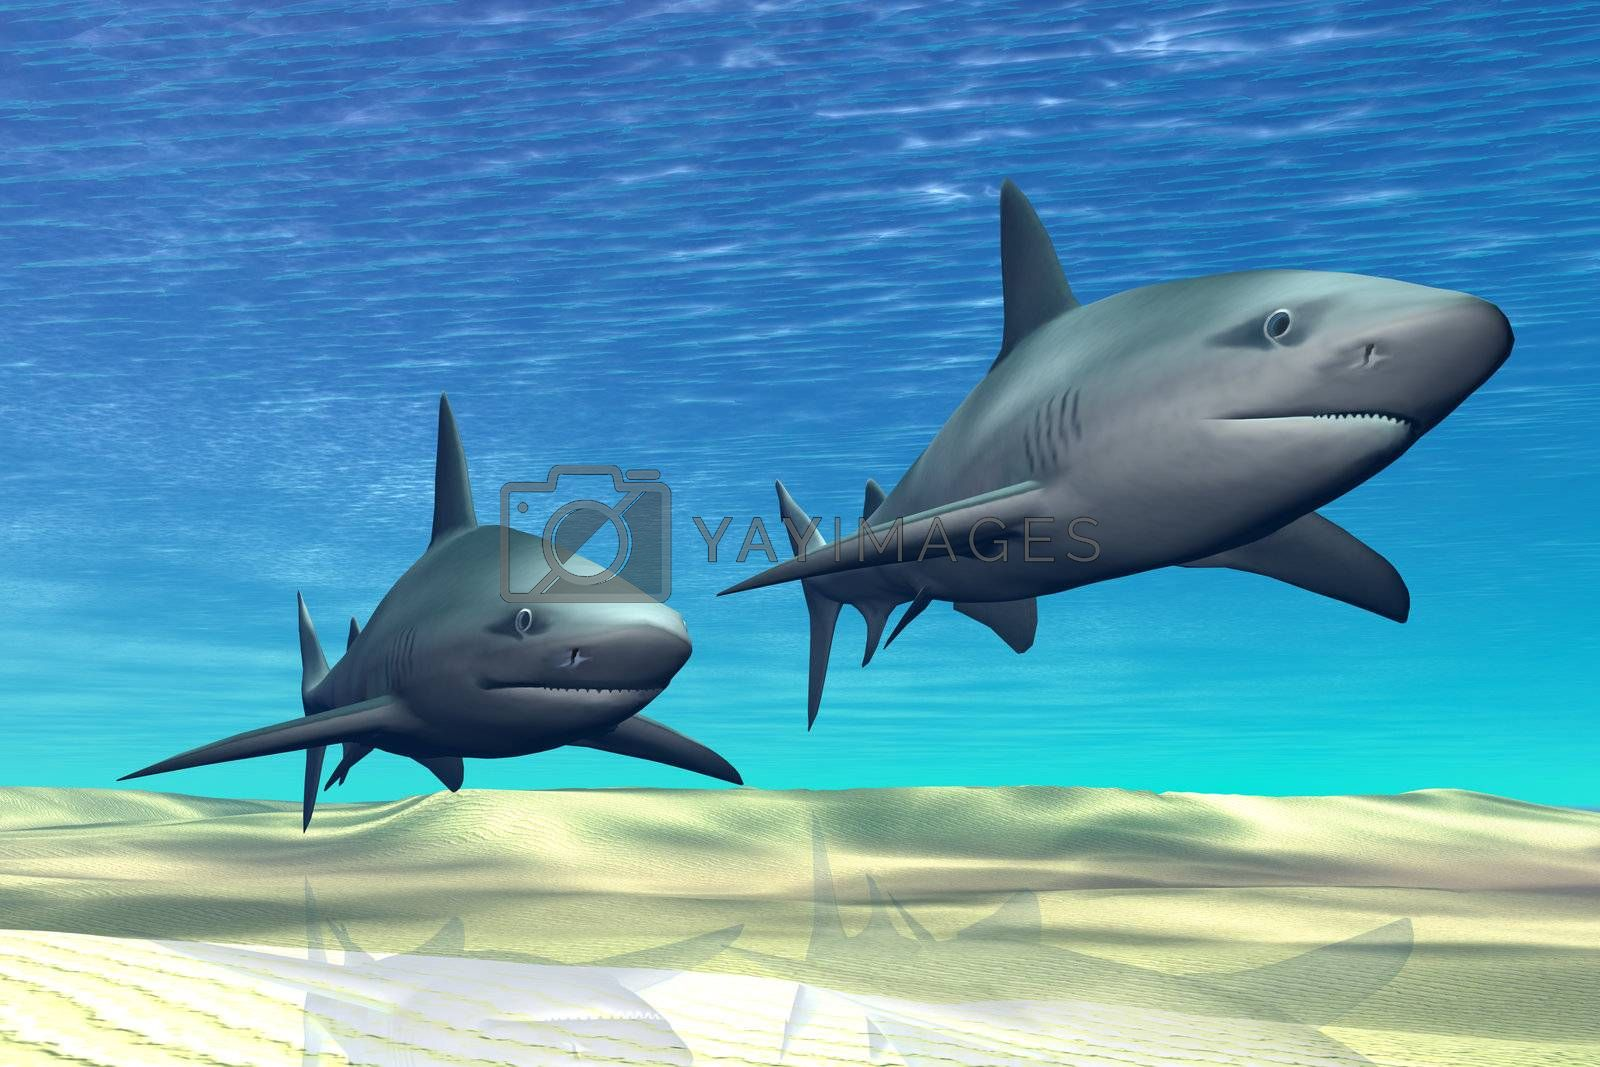 Two sharks on patrol over a sandy reef.